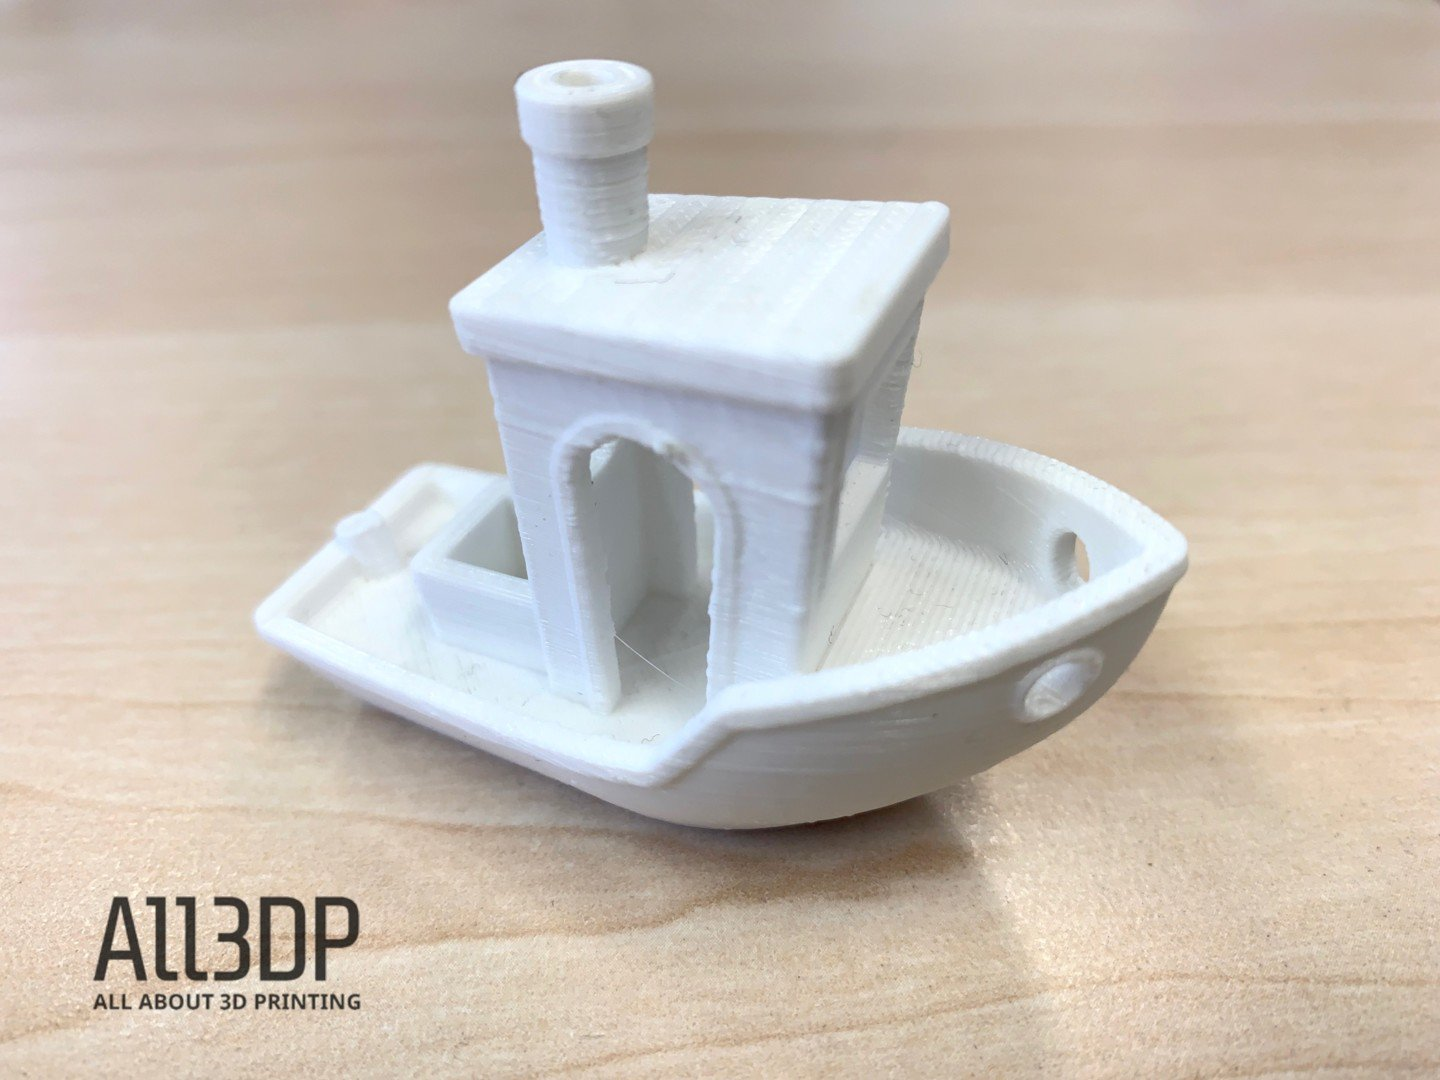 Ender-3-Pro-Review-Benchy-